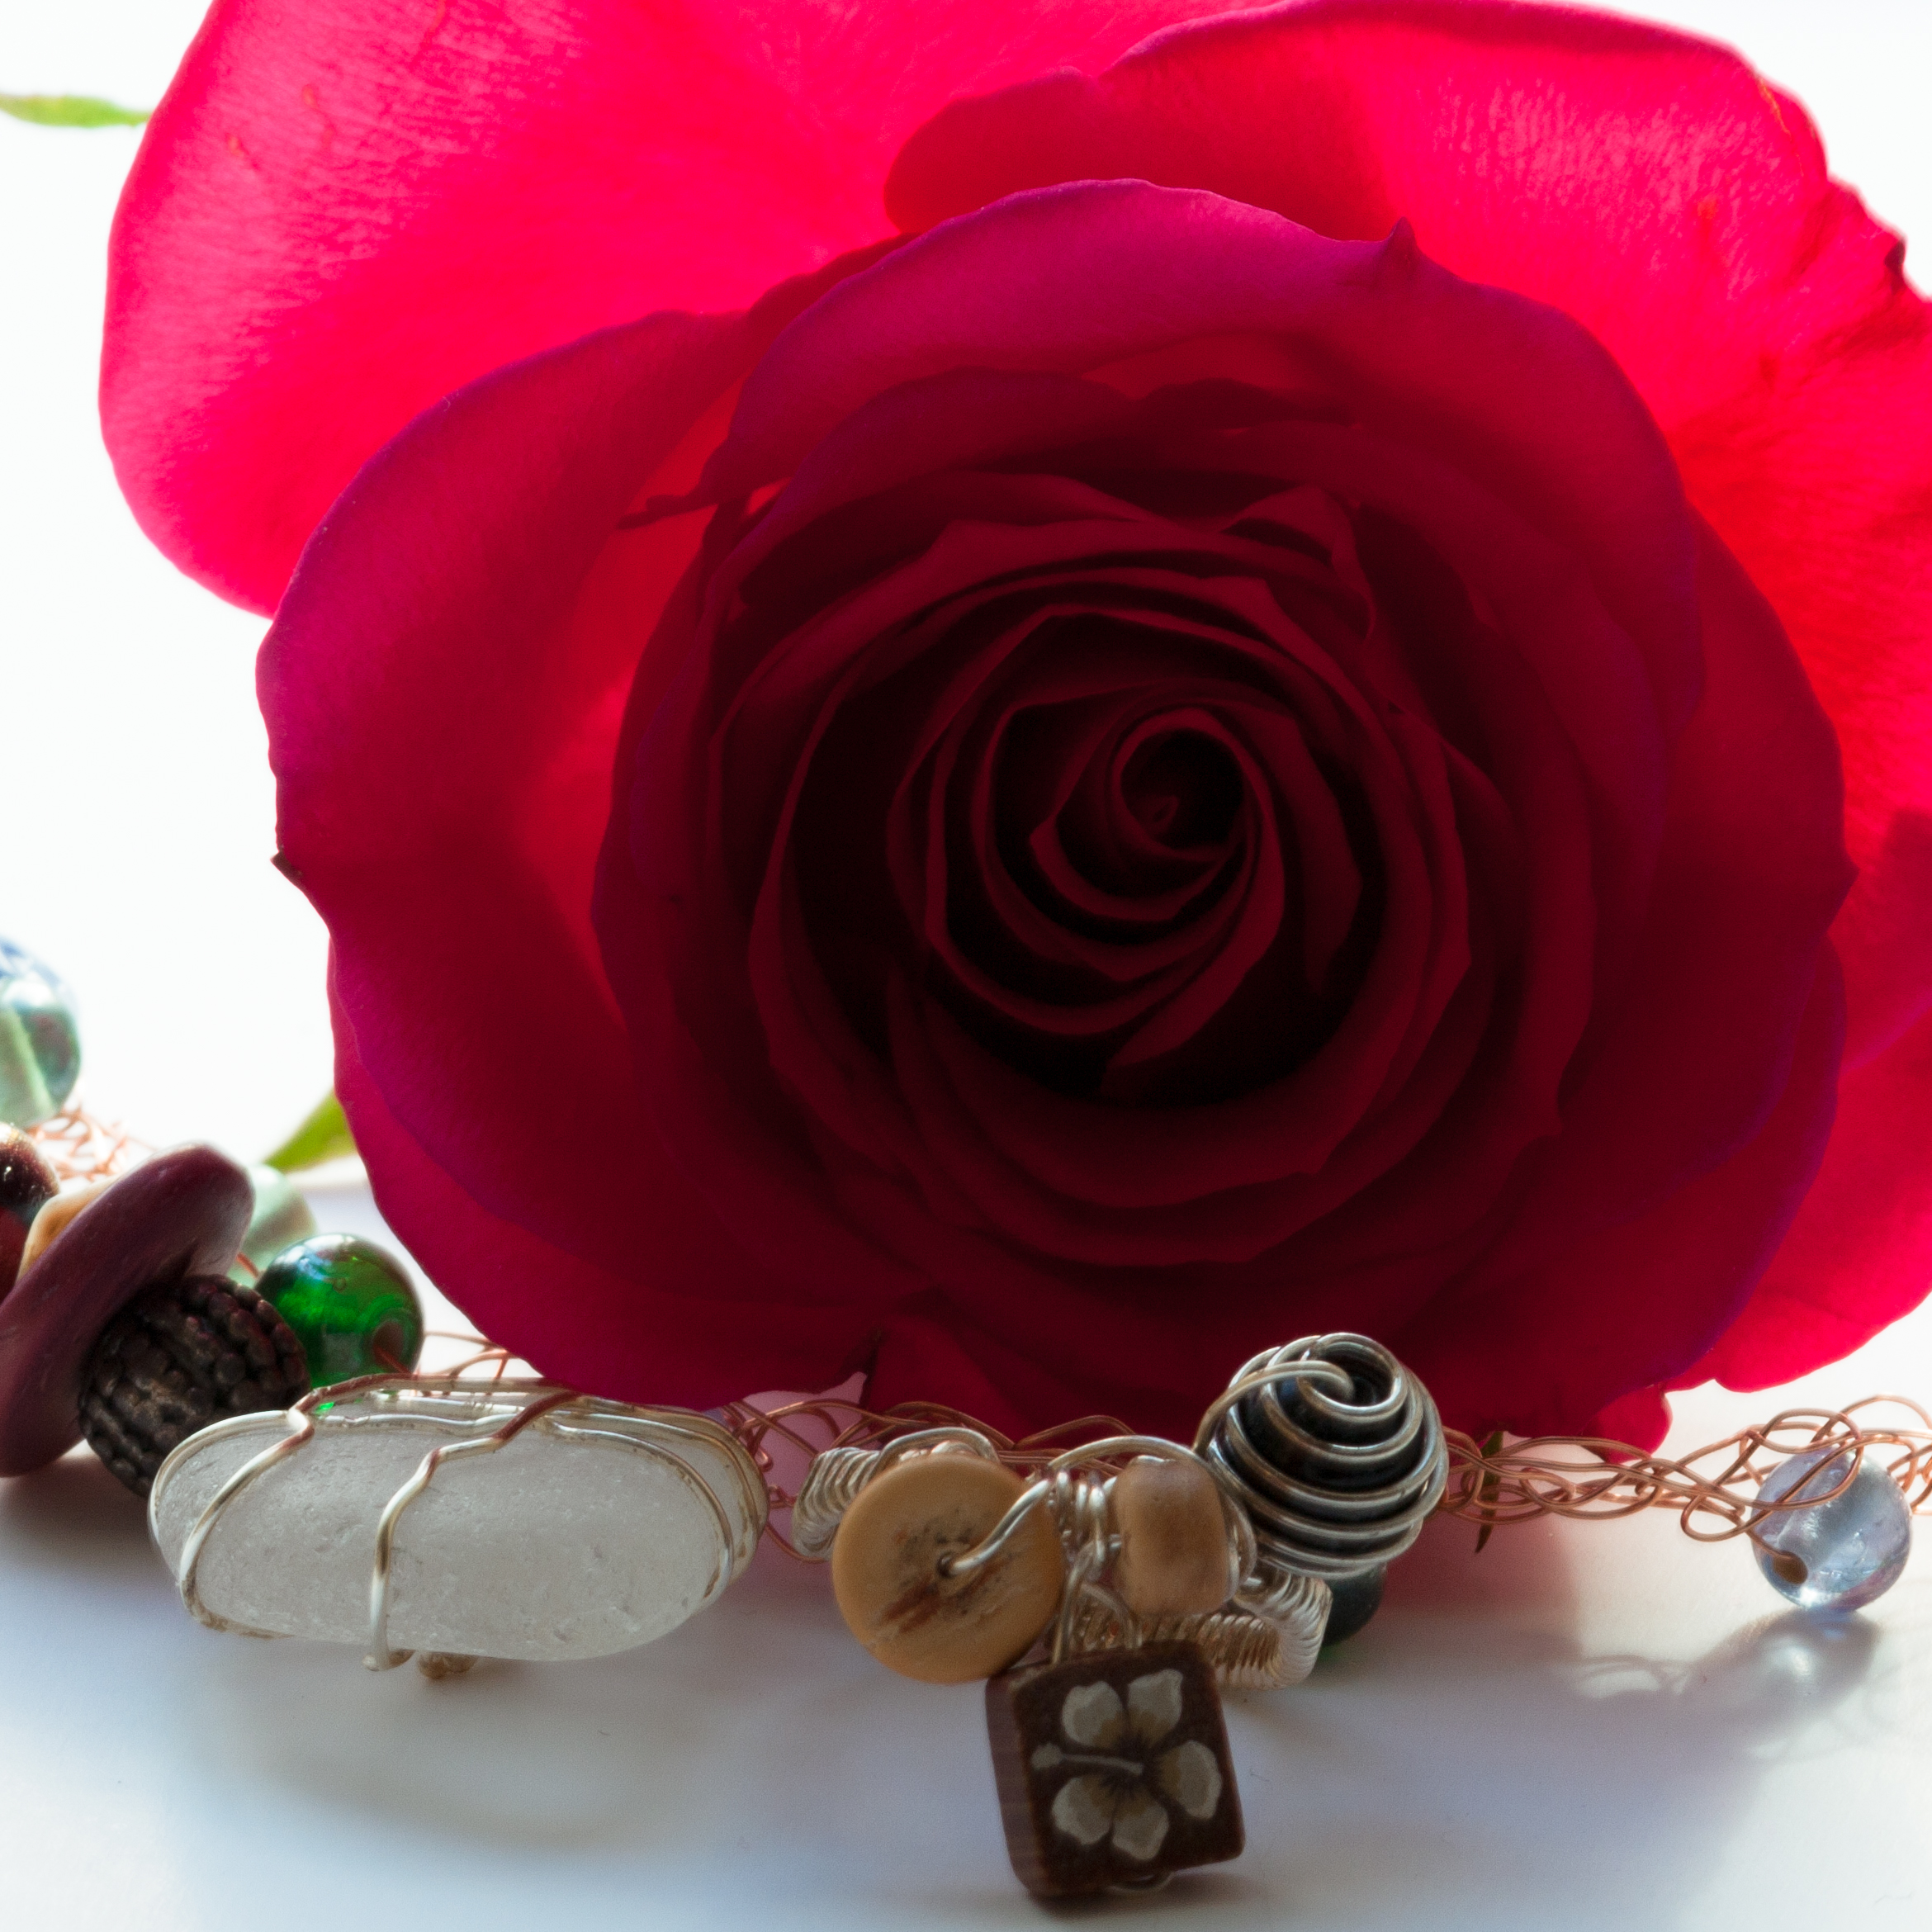 ROSE 3 with Seaglass